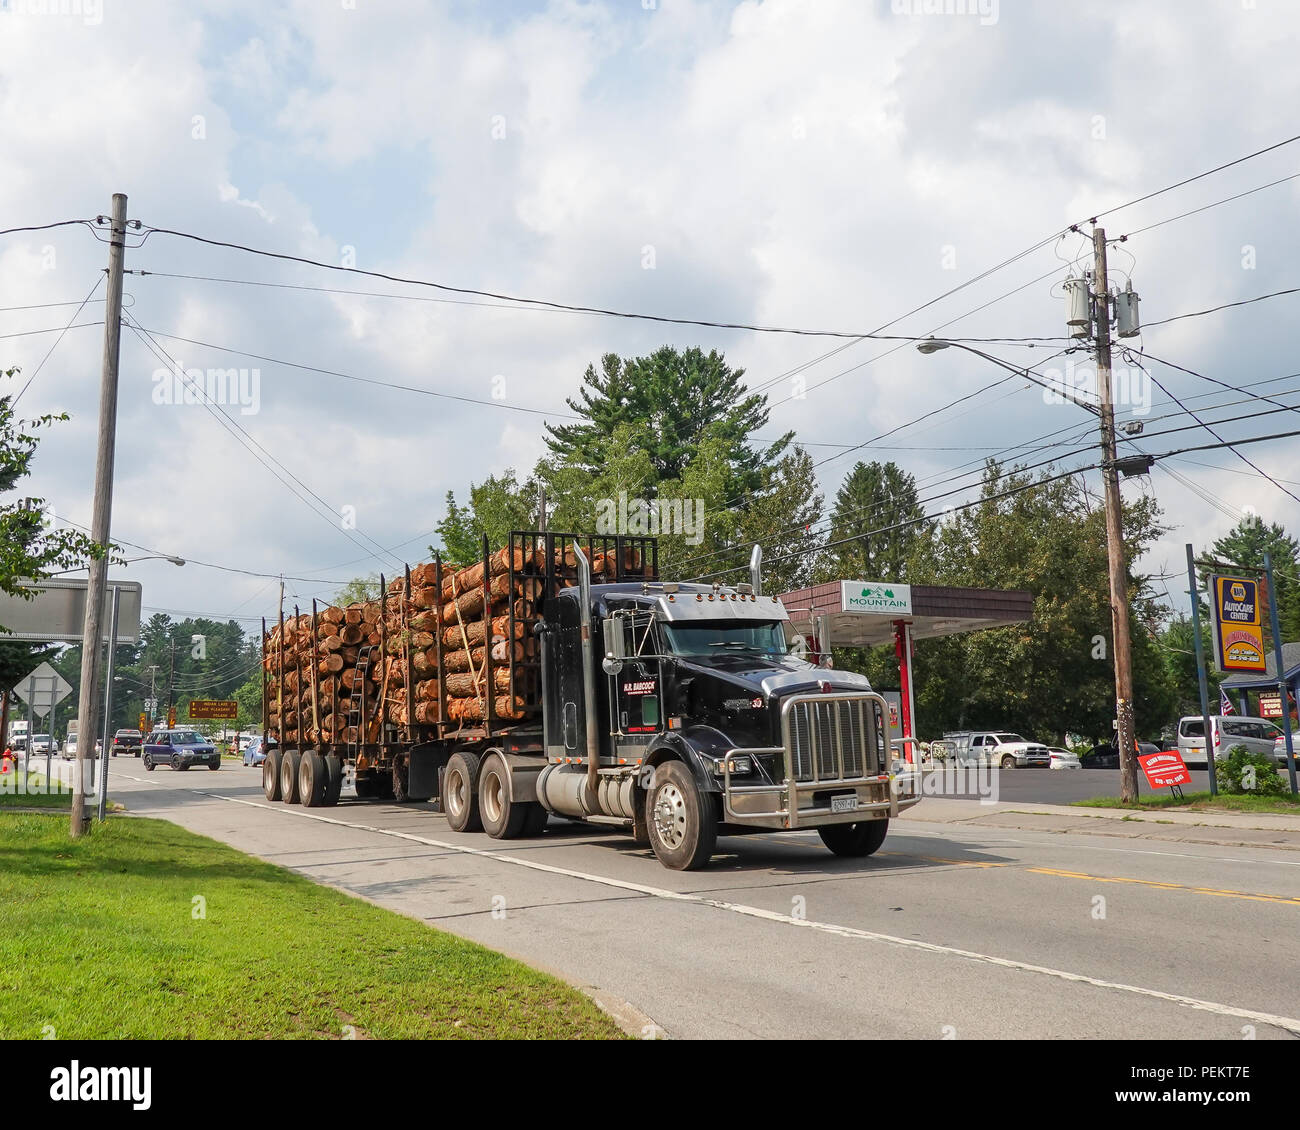 A loaded Kenworth semi-truck hauling logs through Speculator, NY USA - Stock Image